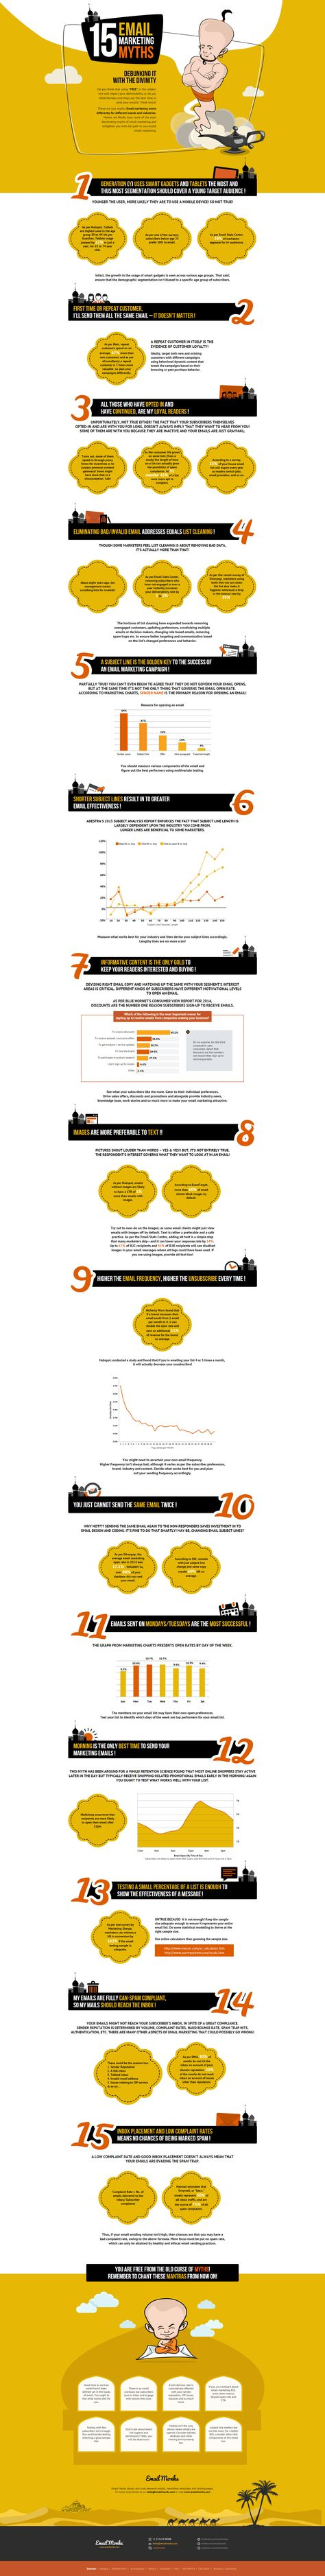 15 email marketing myths  Bron: http://www.emailmonks.com/mythbusting/15-email-marketing-myths-infographic.html